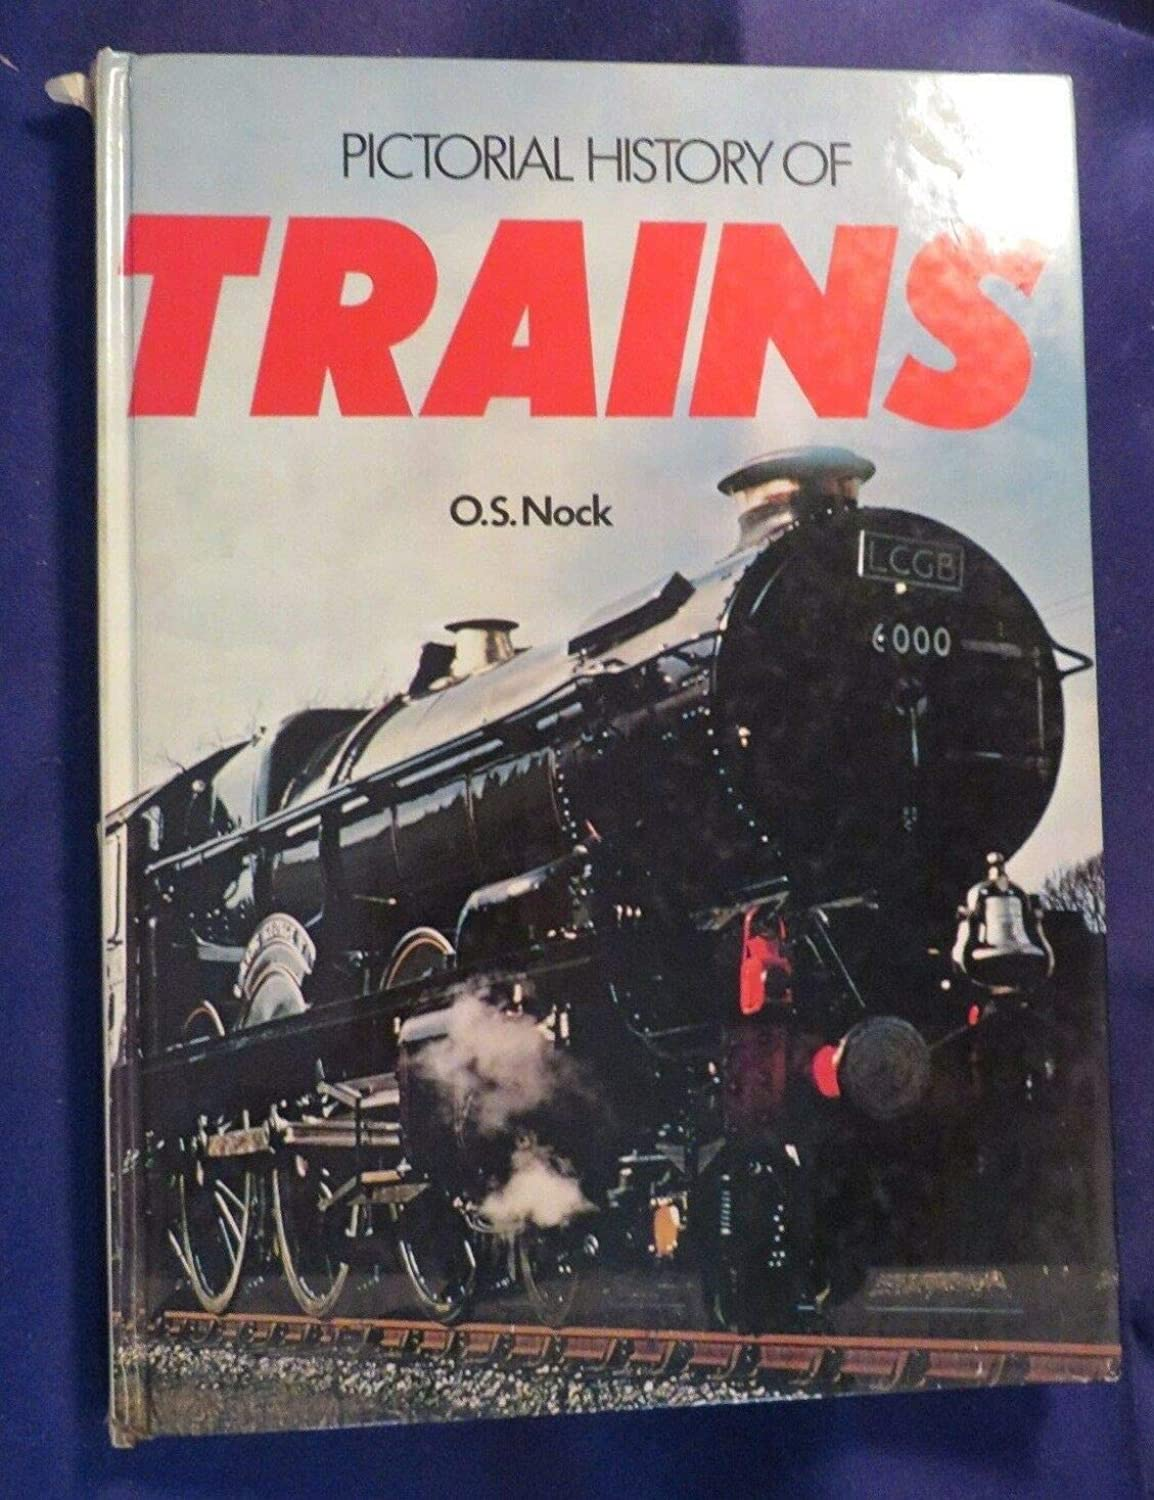 1976 PICTORIAL History of Trains Large Hardcover Book by O.S. Nock